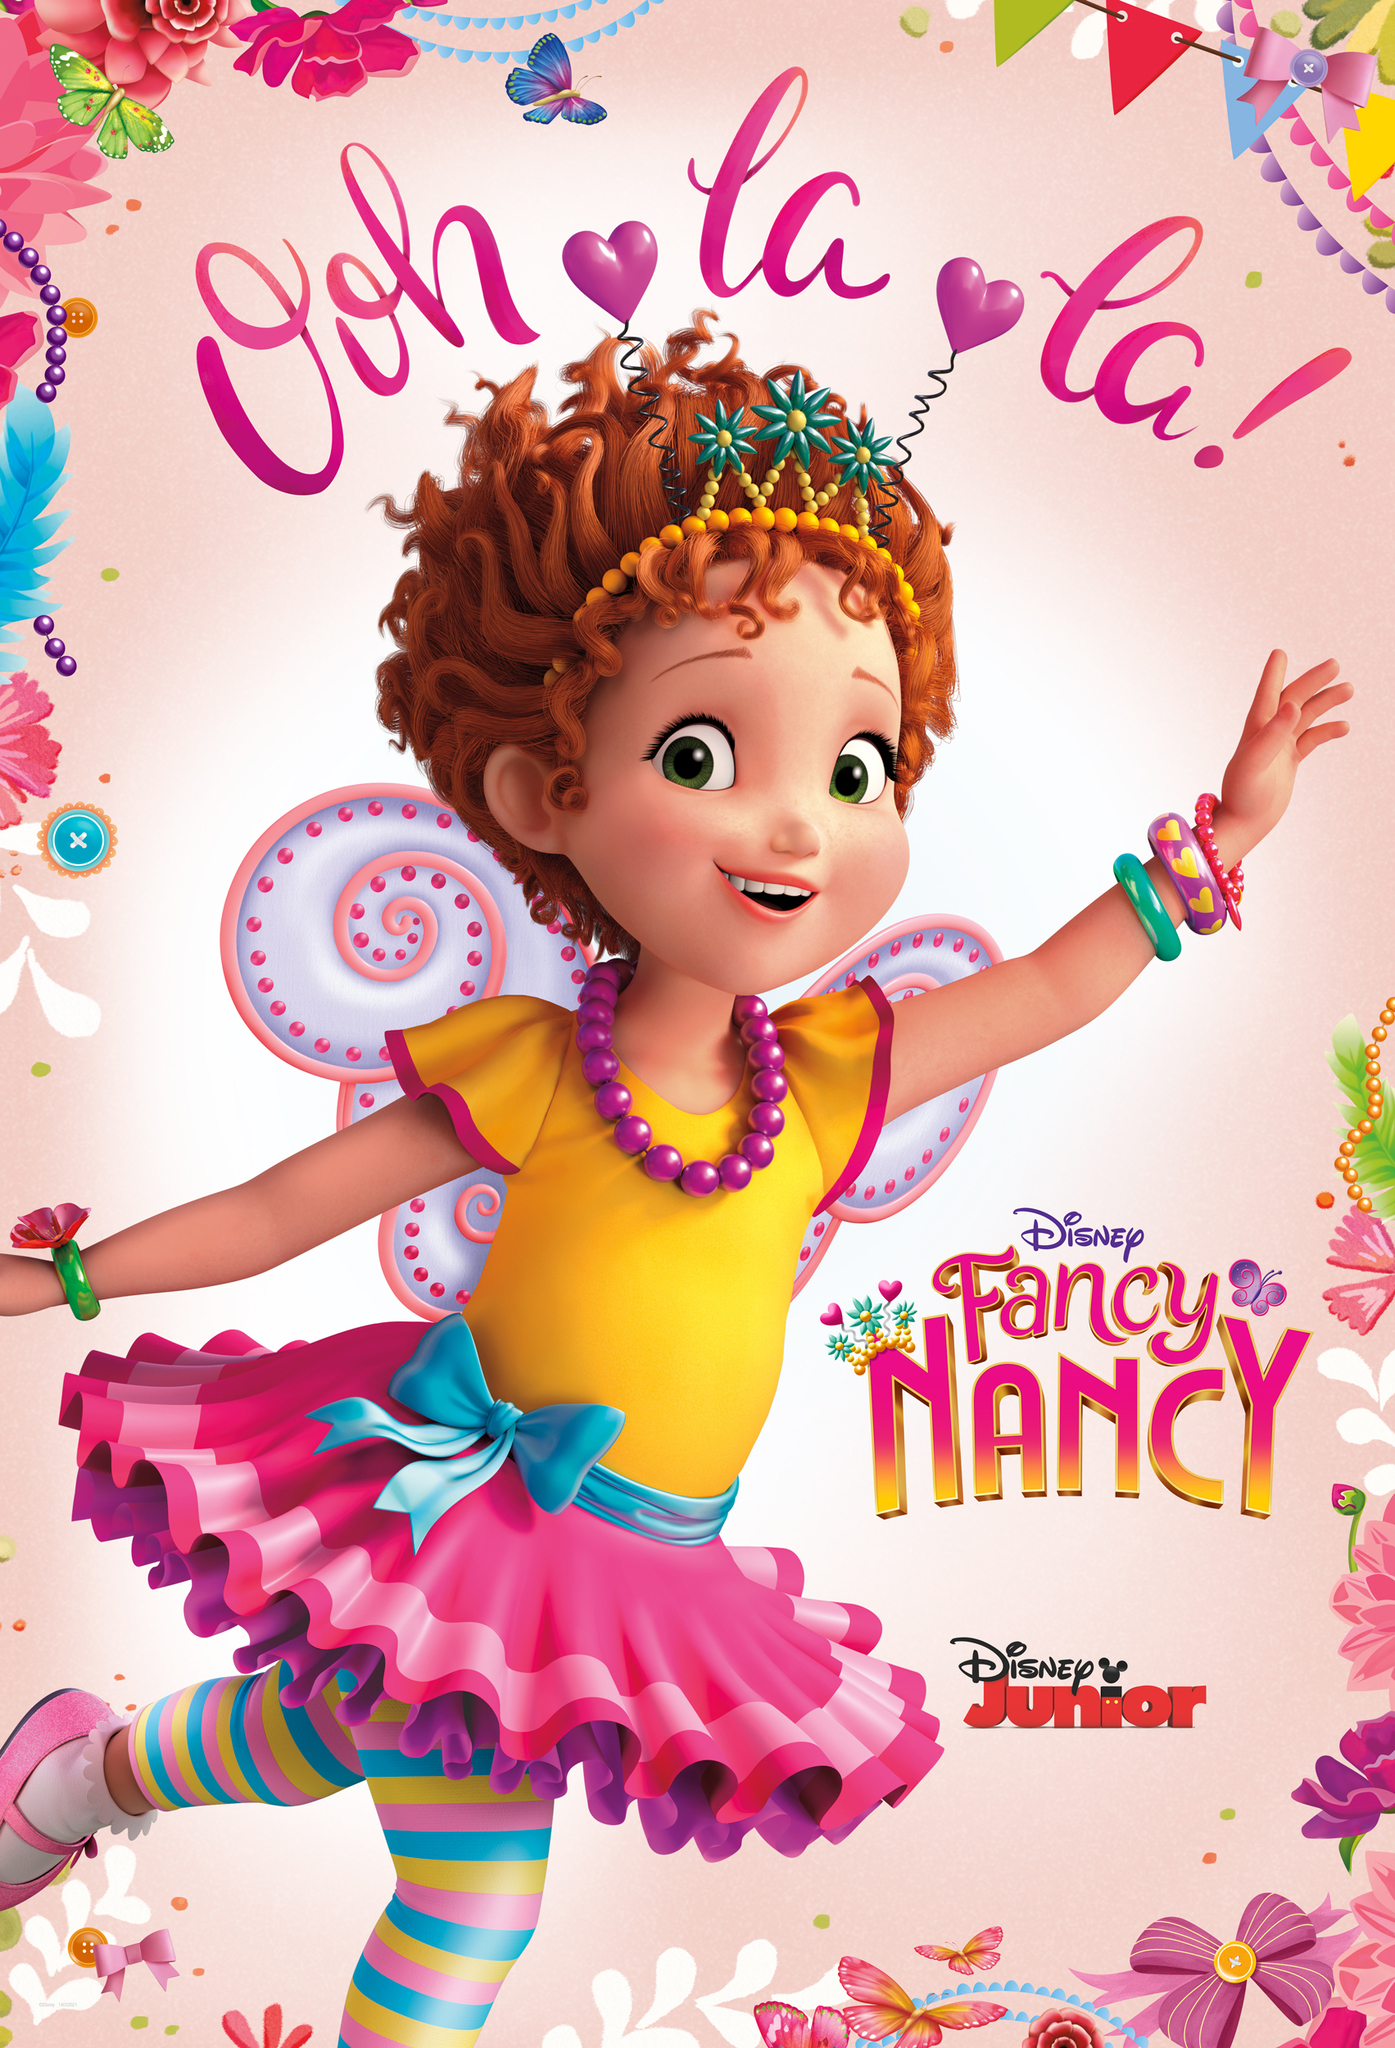 Disney's Fancy Nancy